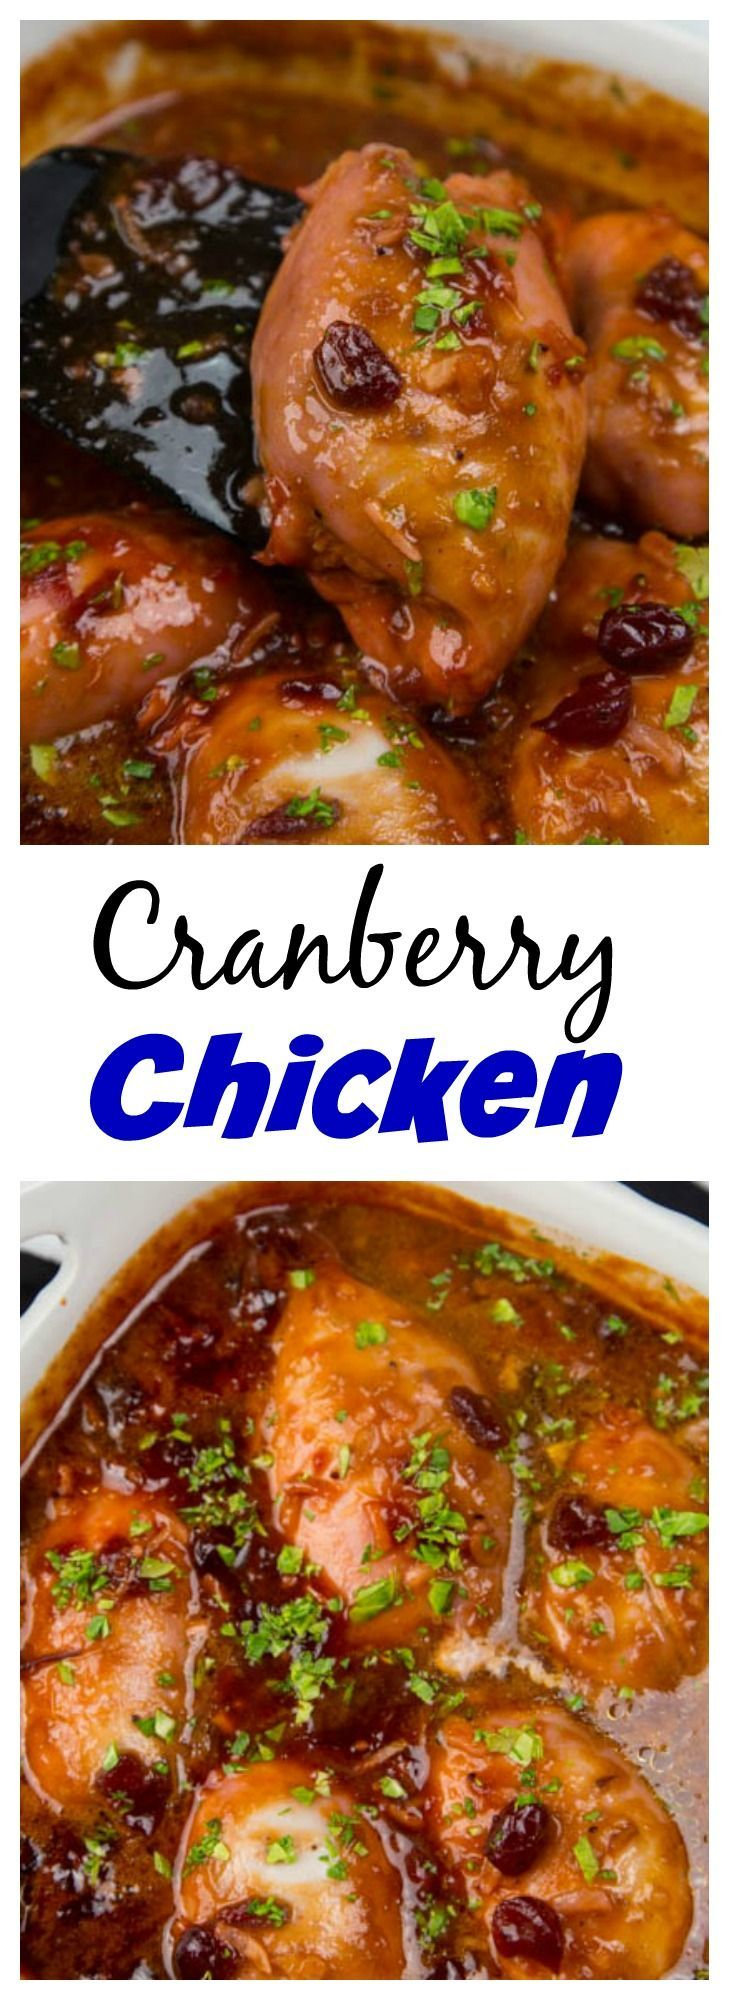 Easy Cranberry Chicken – Moist and tender baked chicken in a tangy cranberry sauce. Great, comforting dinner on busy nights.